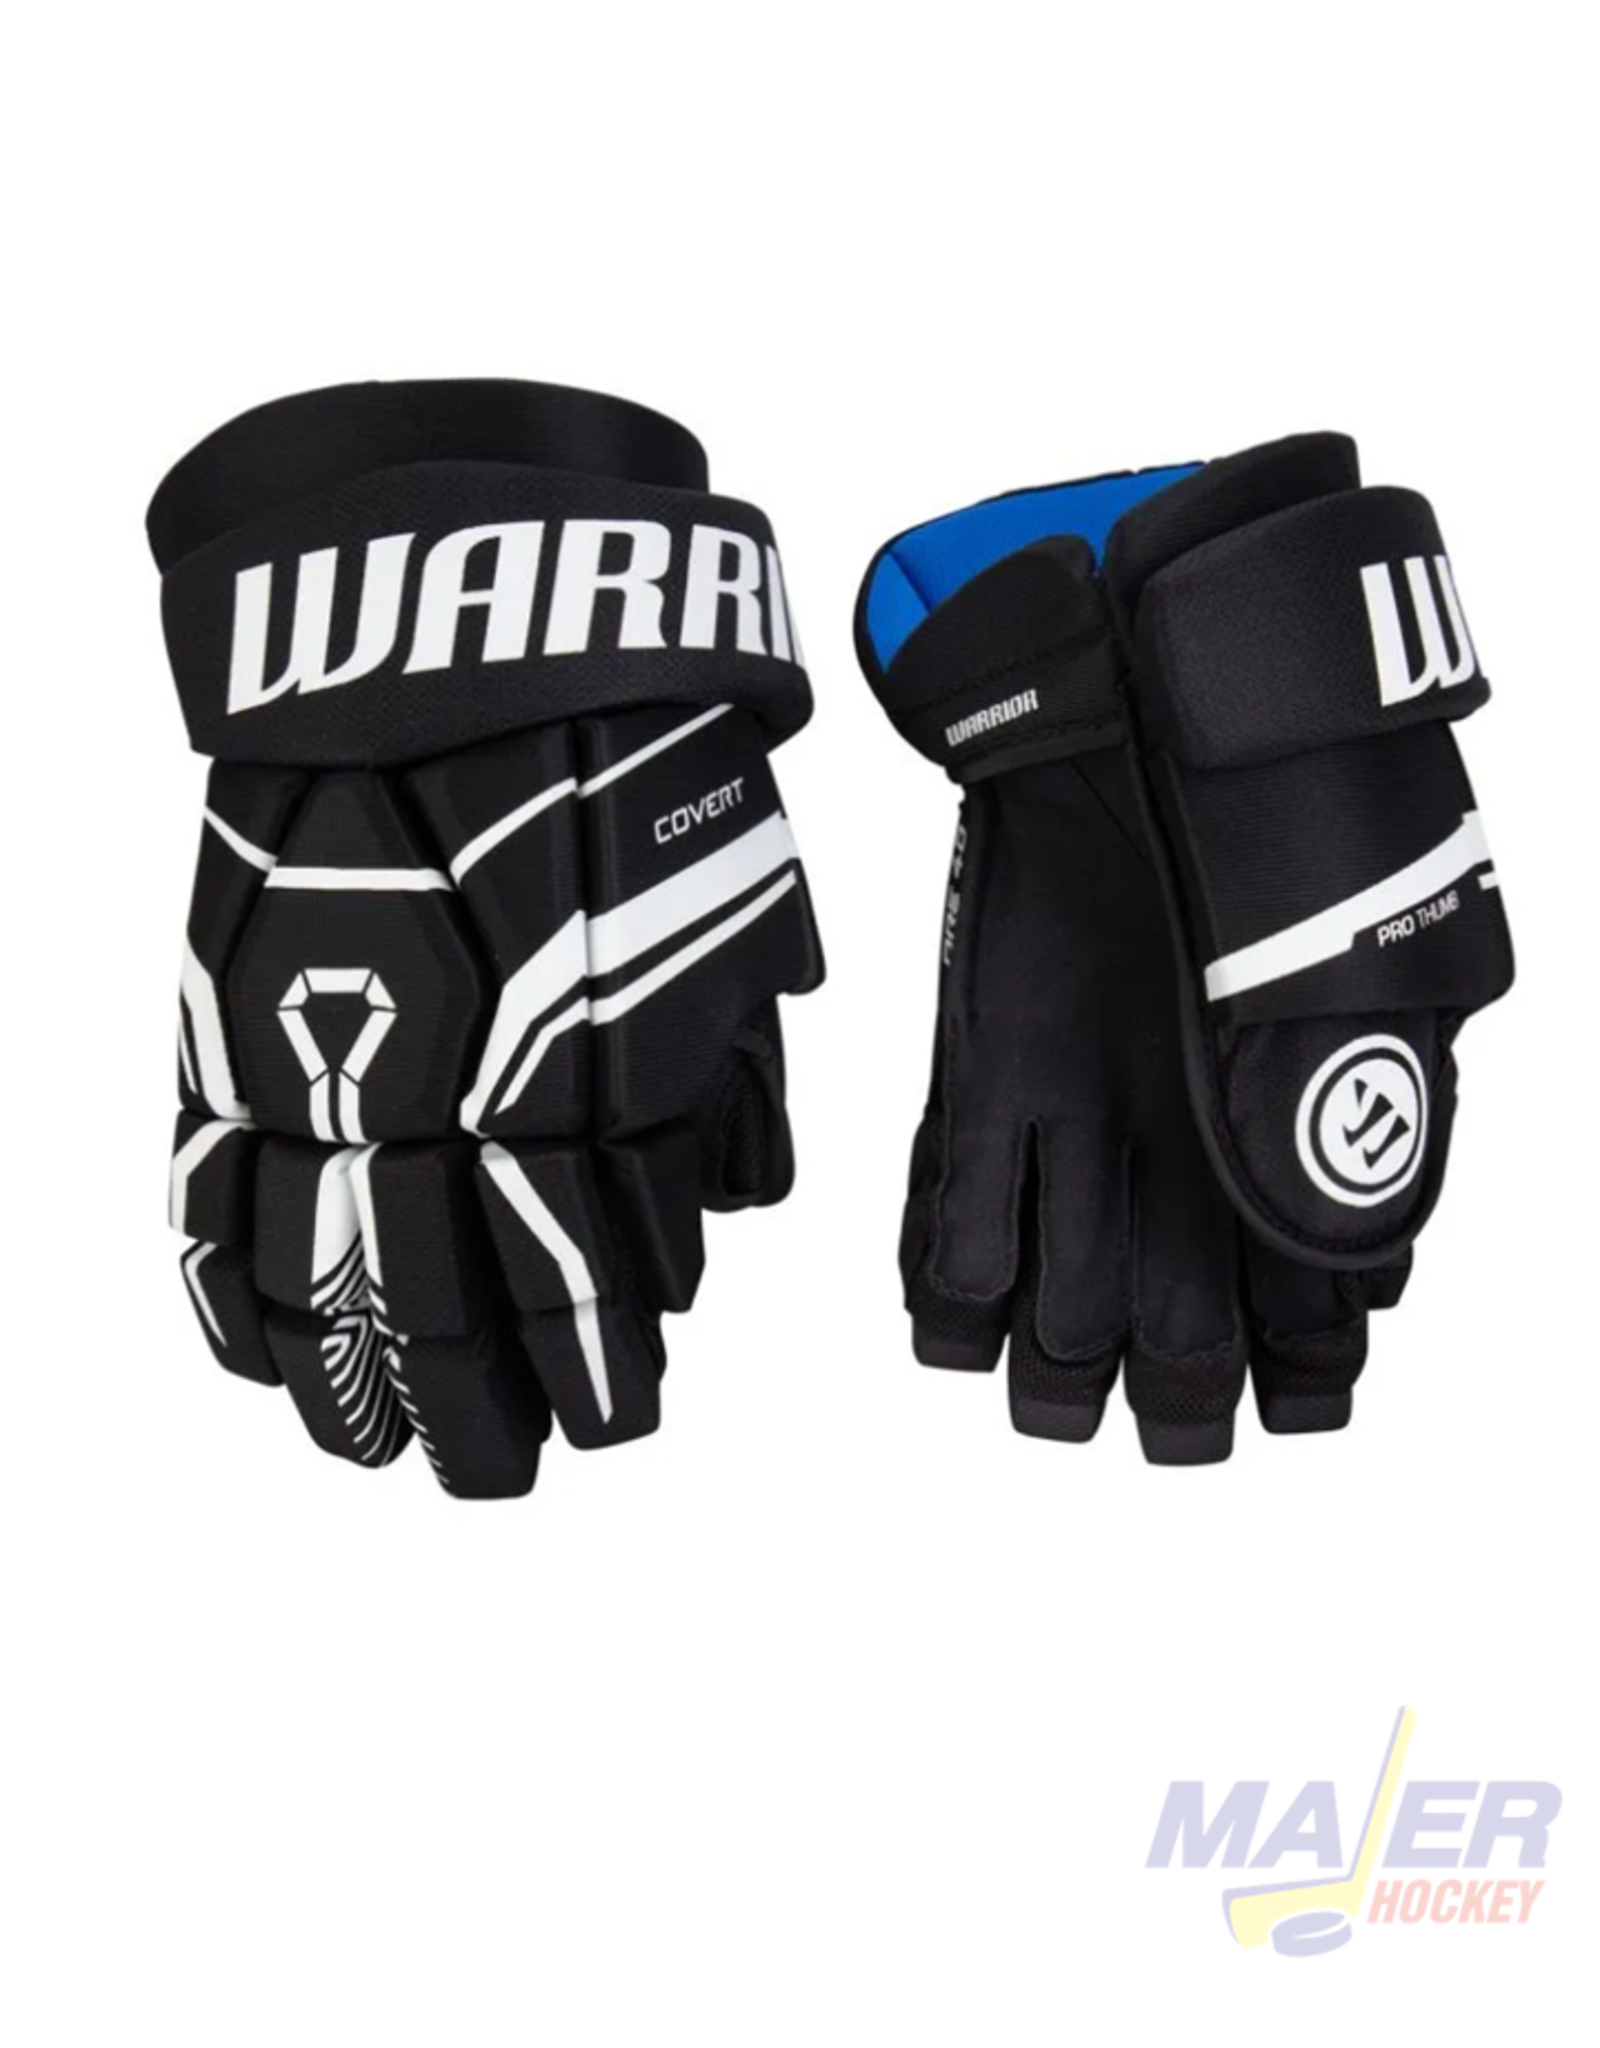 Warrior Covert QRE 40 Youth Gloves